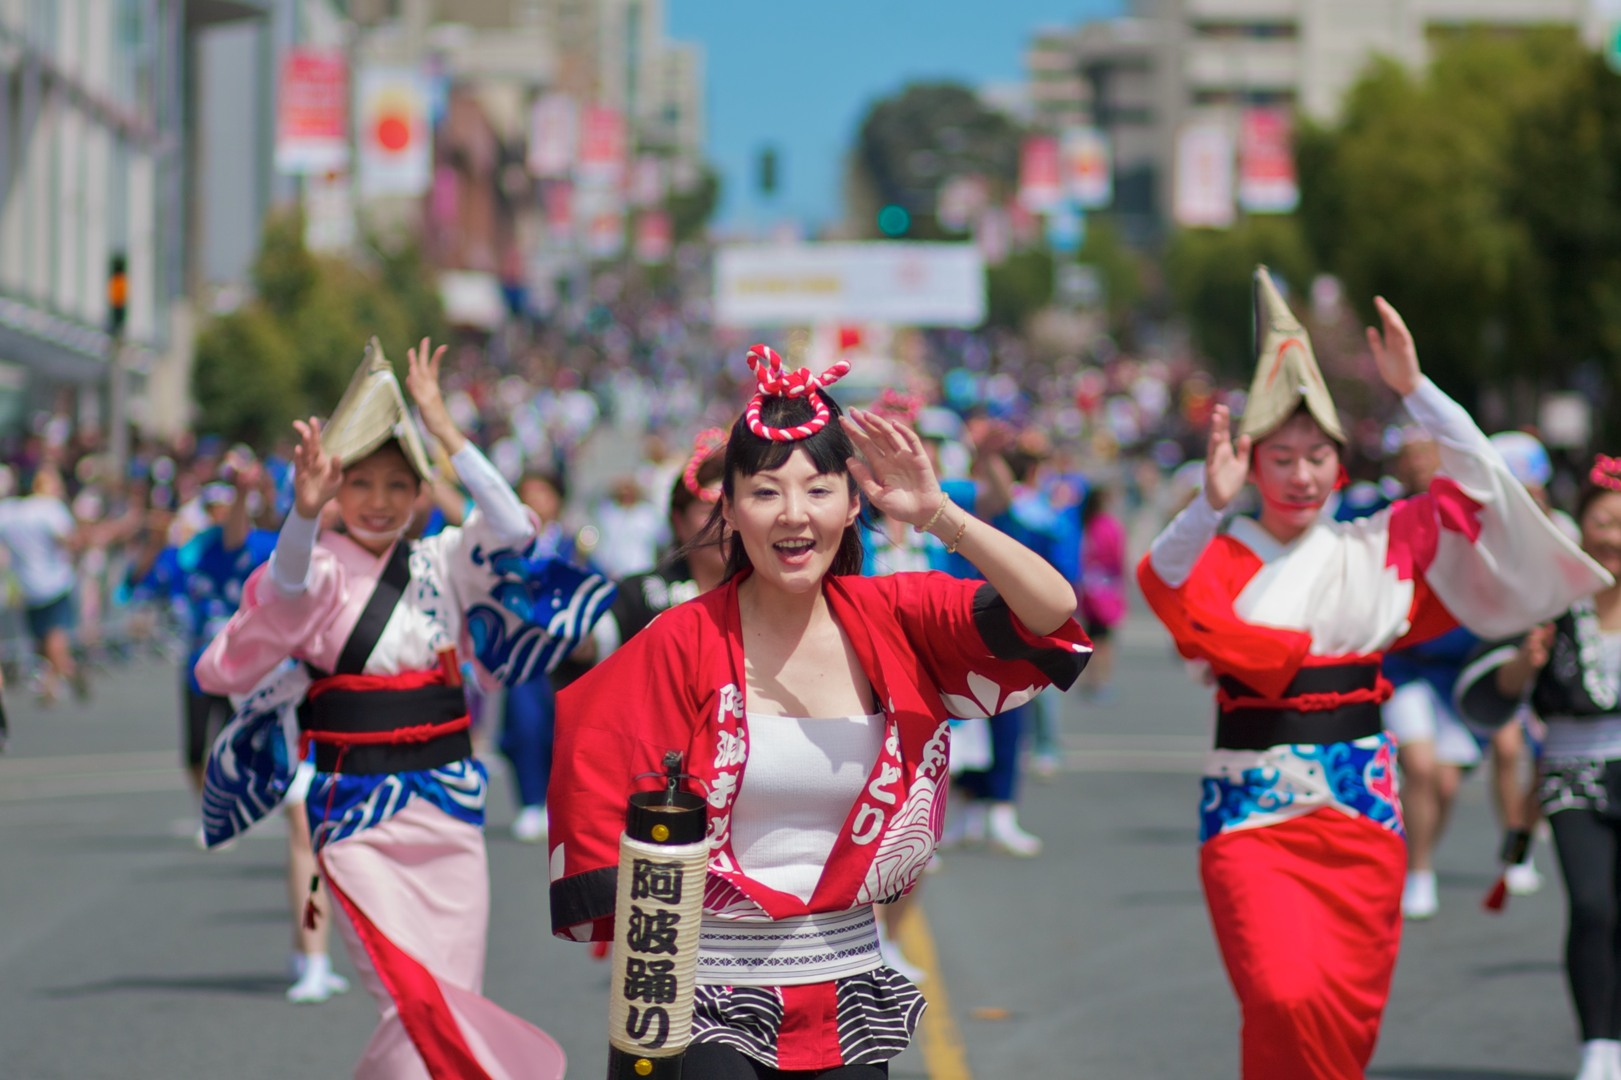 The annual Cherry Blossom Festival is a fun annual event held in Japantown.